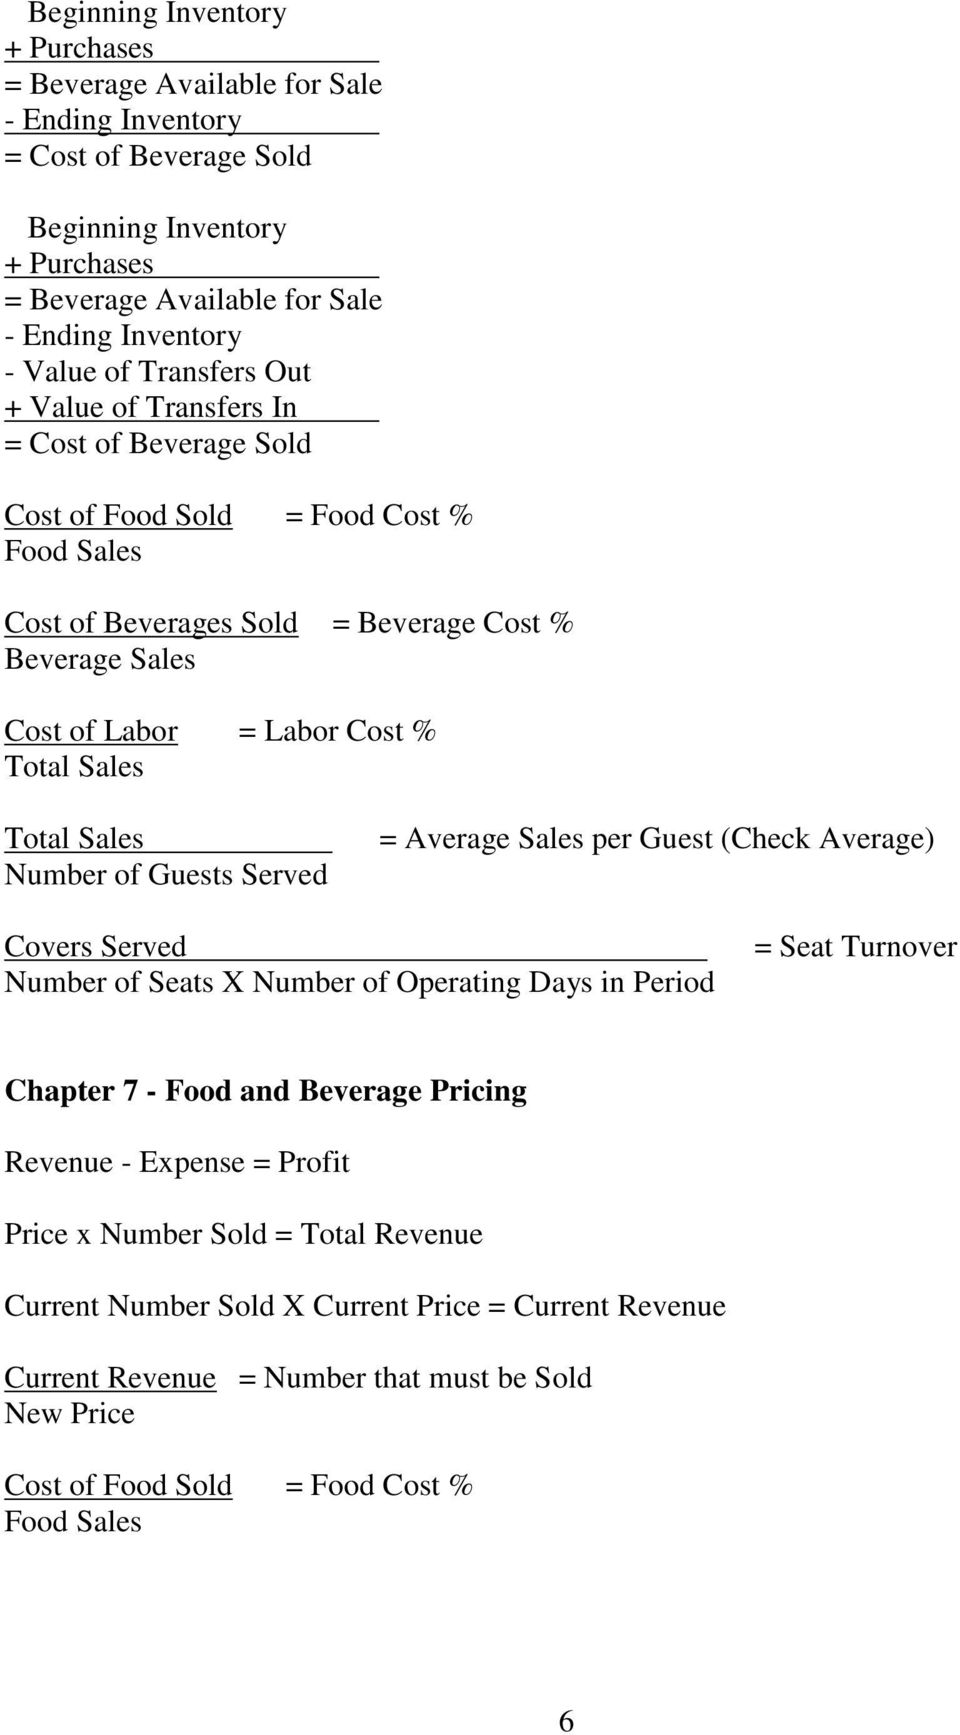 Sales Total Sales Number of Guests Served = Average Sales per Guest (Check Average) Covers Served Number of Seats X Number of Operating Days in Period = Seat Turnover Chapter 7 - Food and Beverage